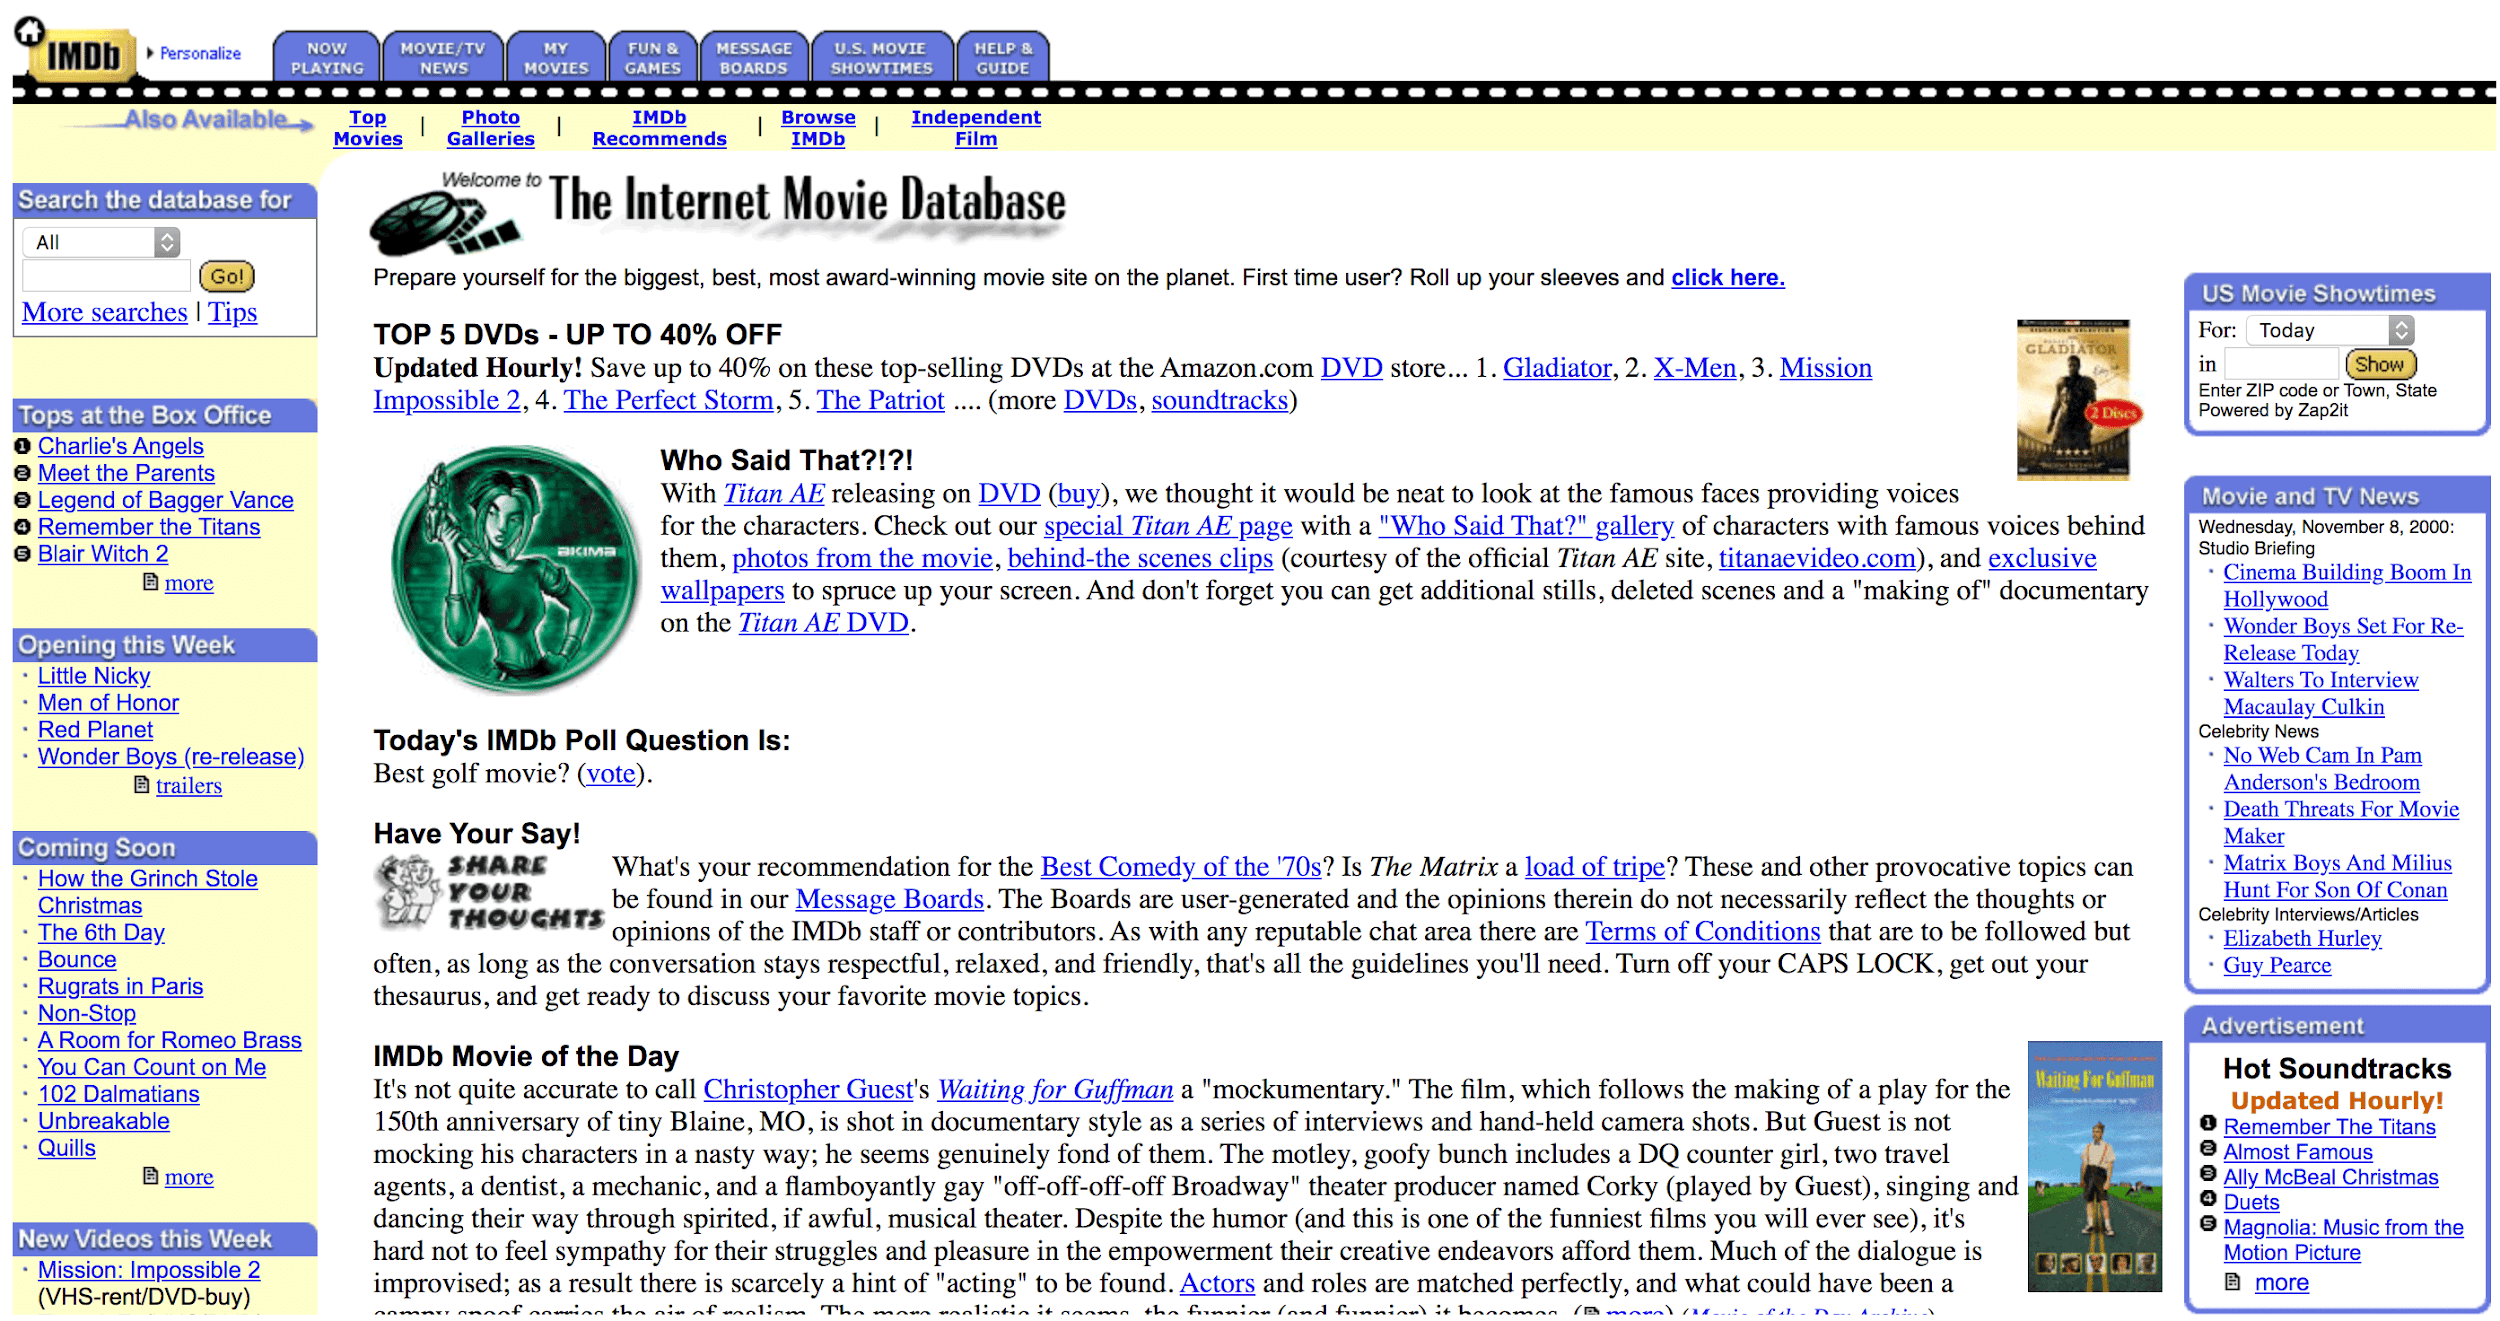 Without innovative design, the web would still look like this.